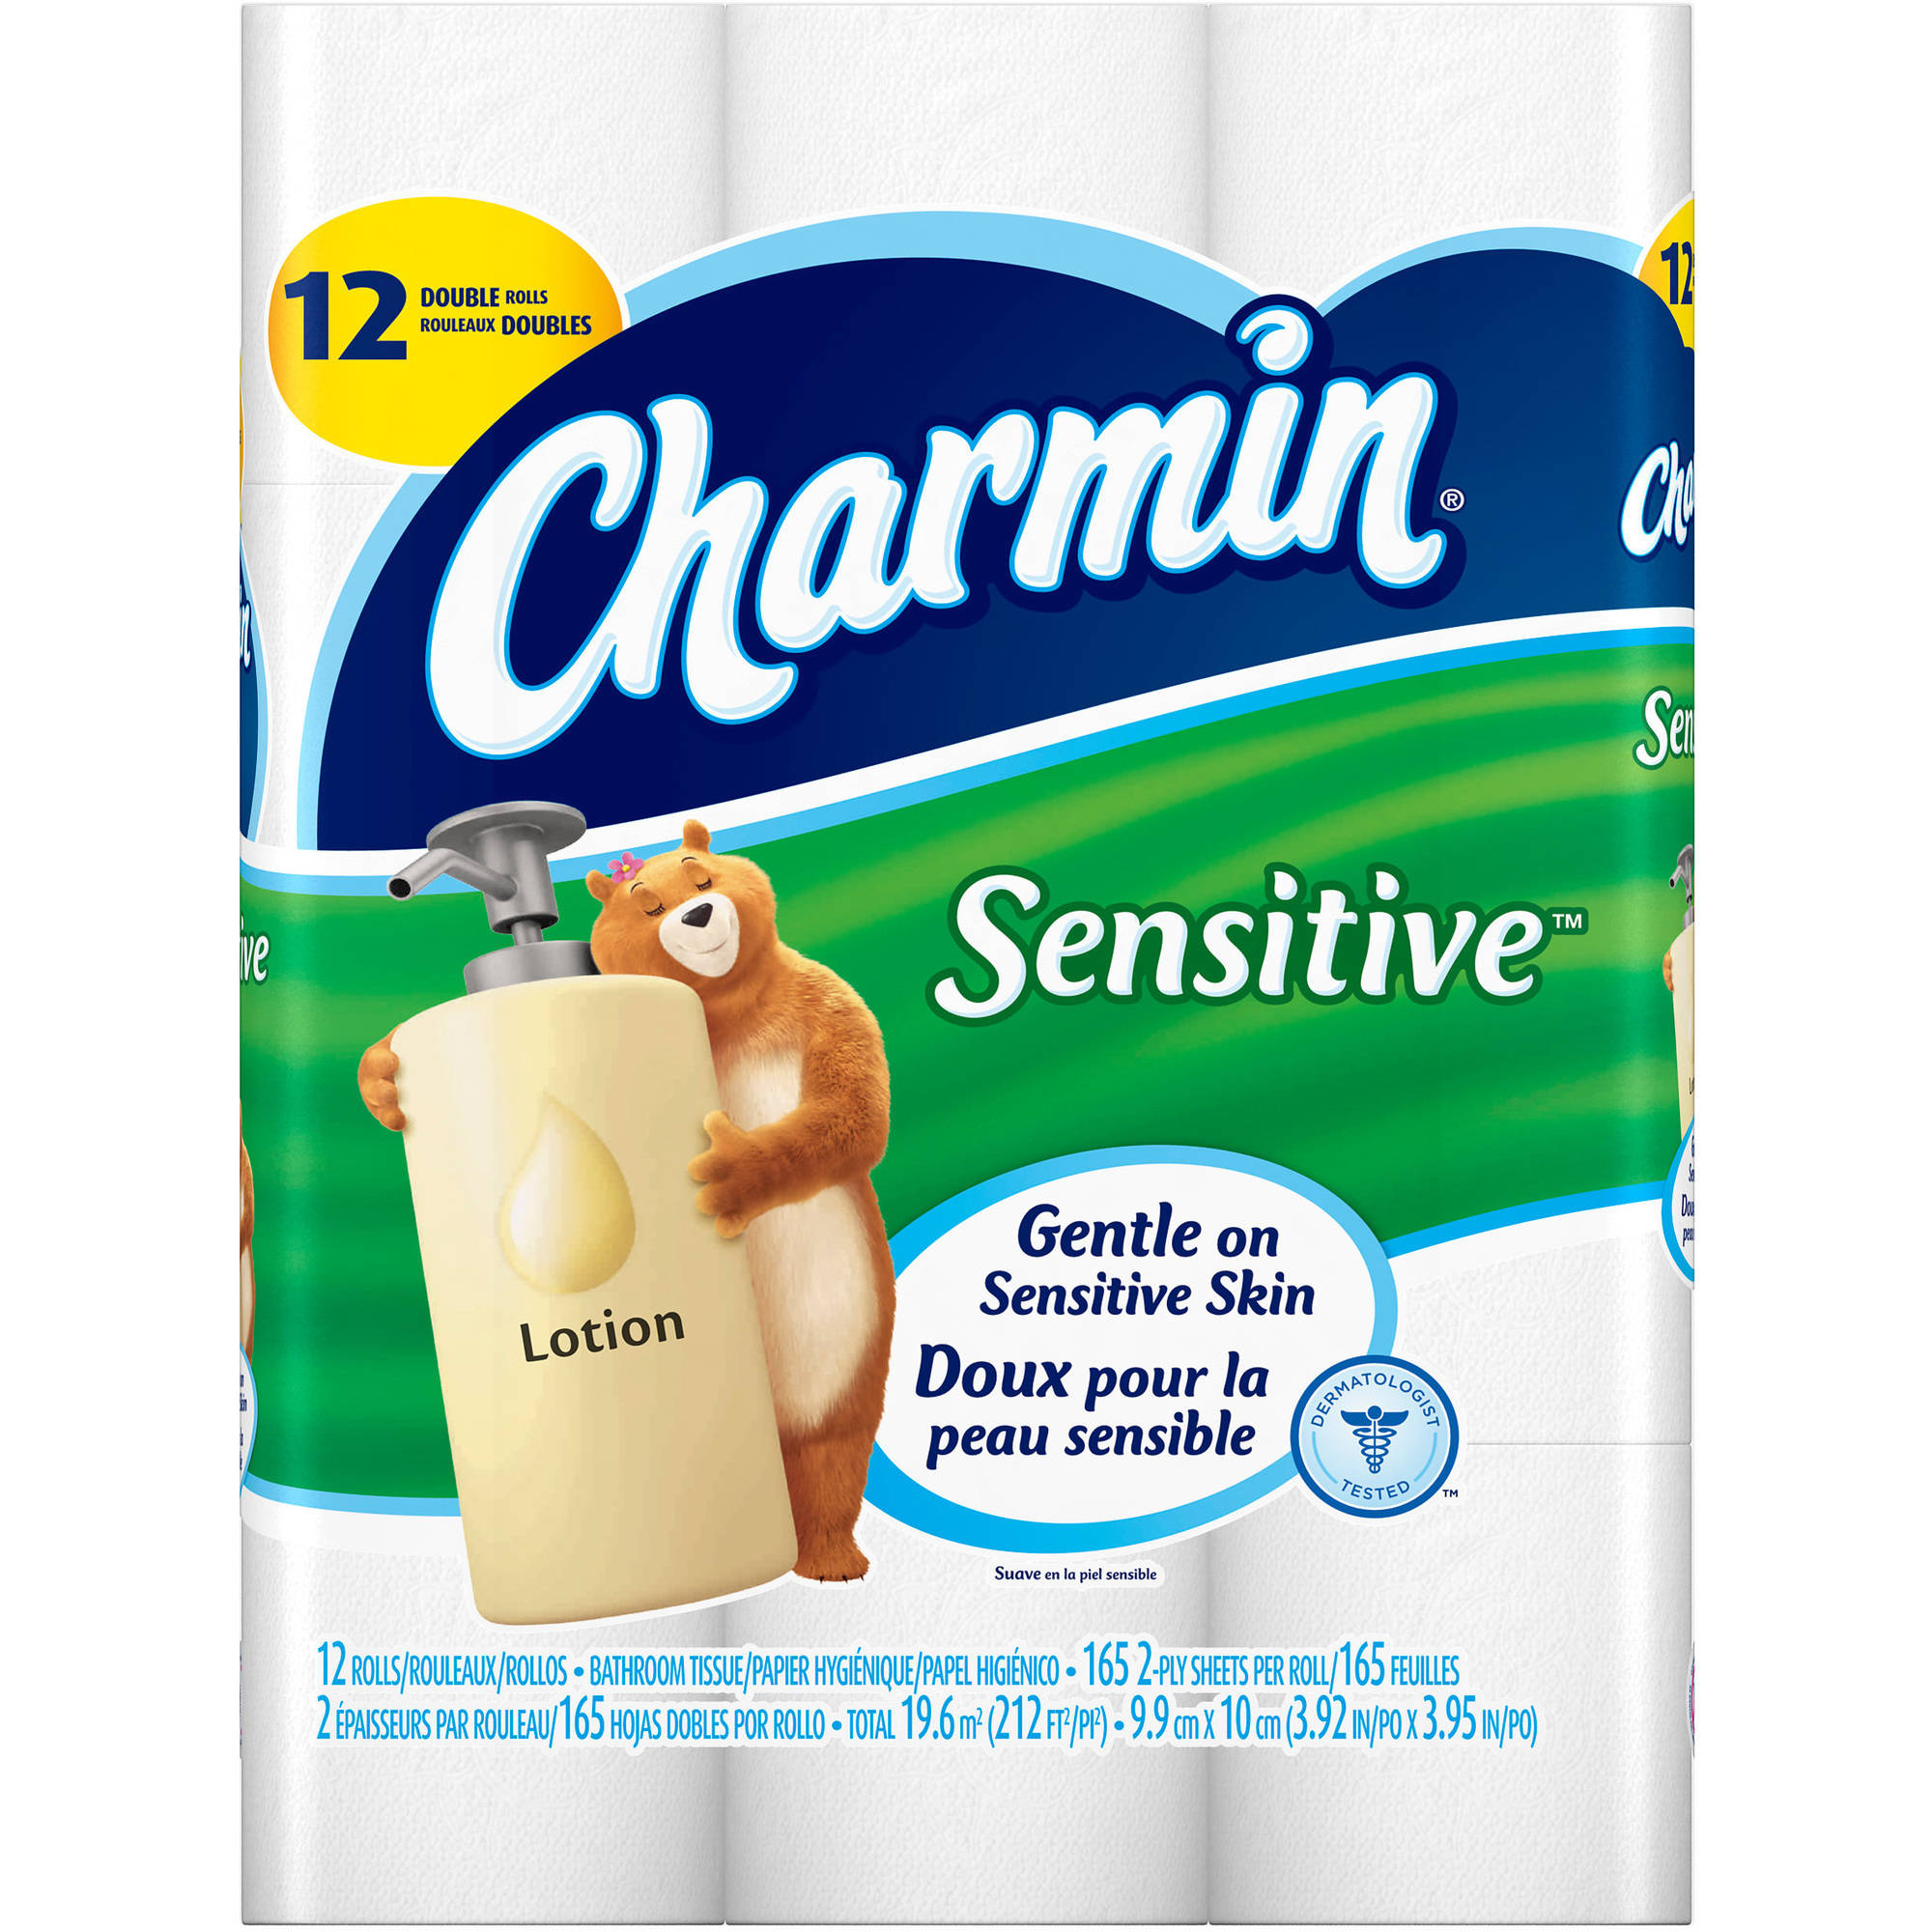 Charmin Sensitive Double Roll Bathroom Tissue, 12 rolls